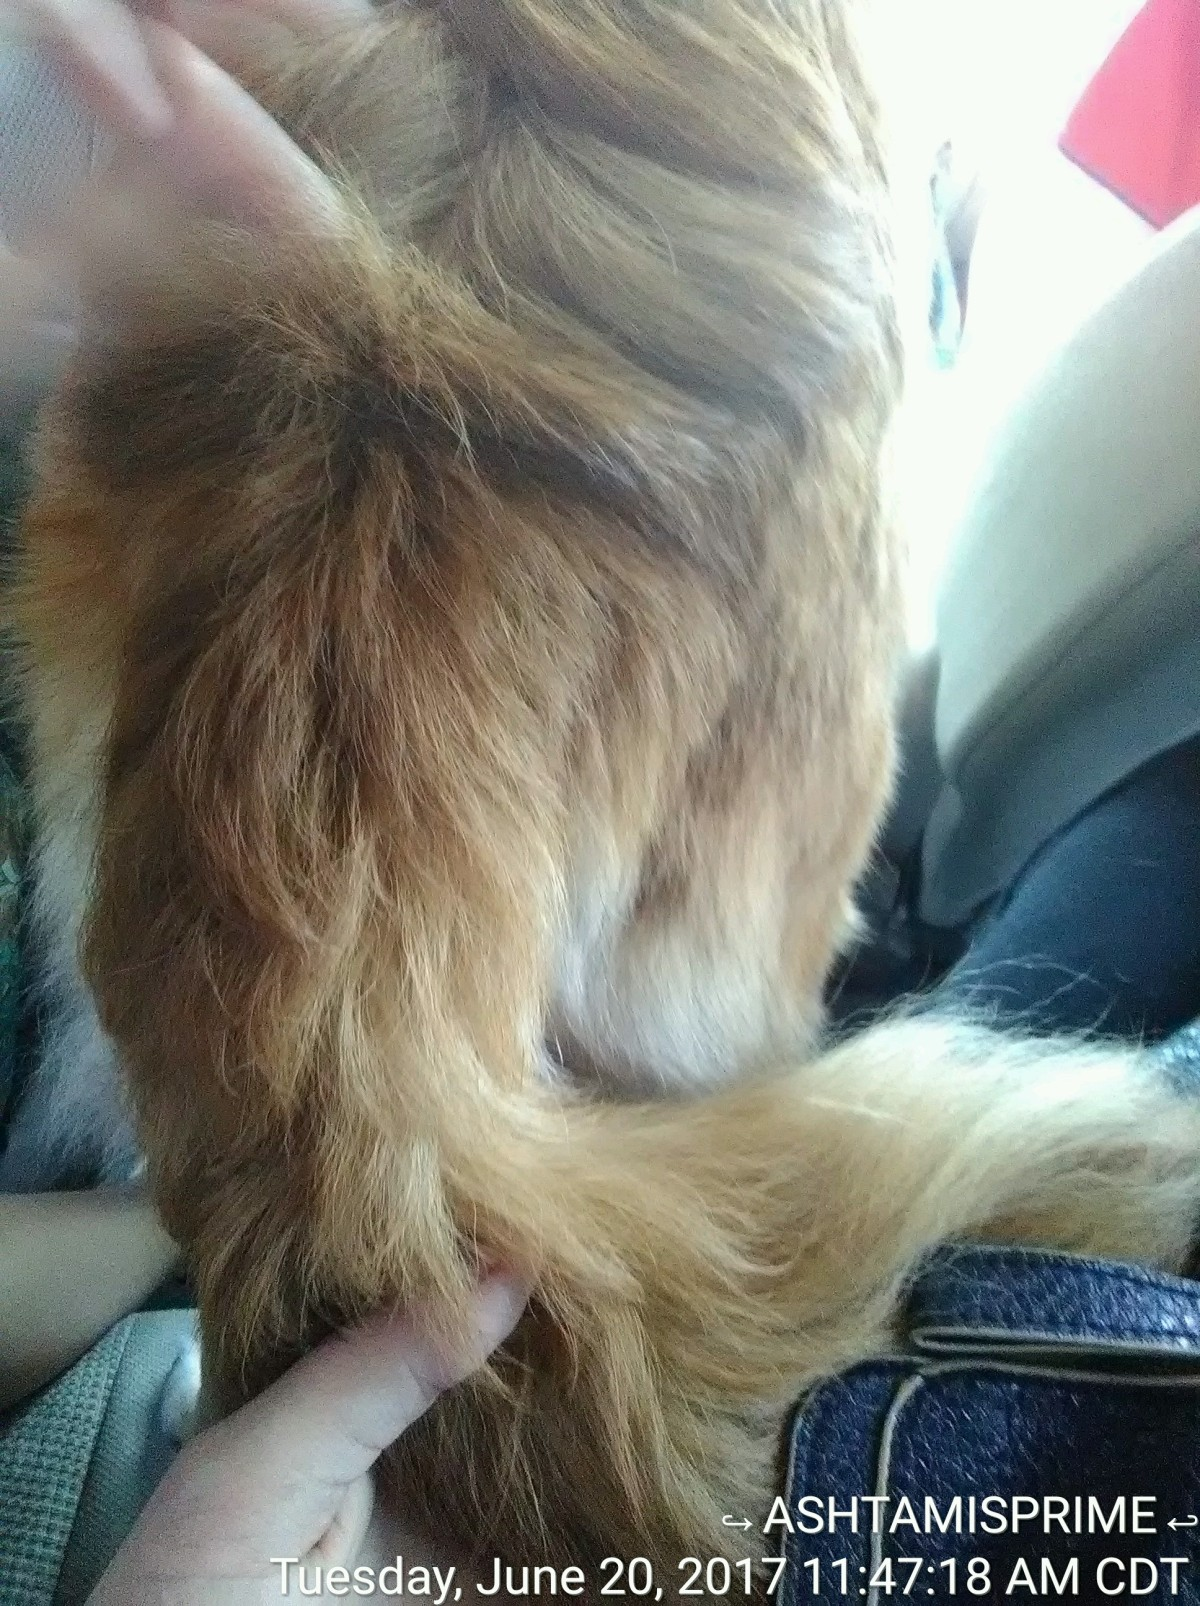 My mom's dogs butt looks like a woolly mammoth